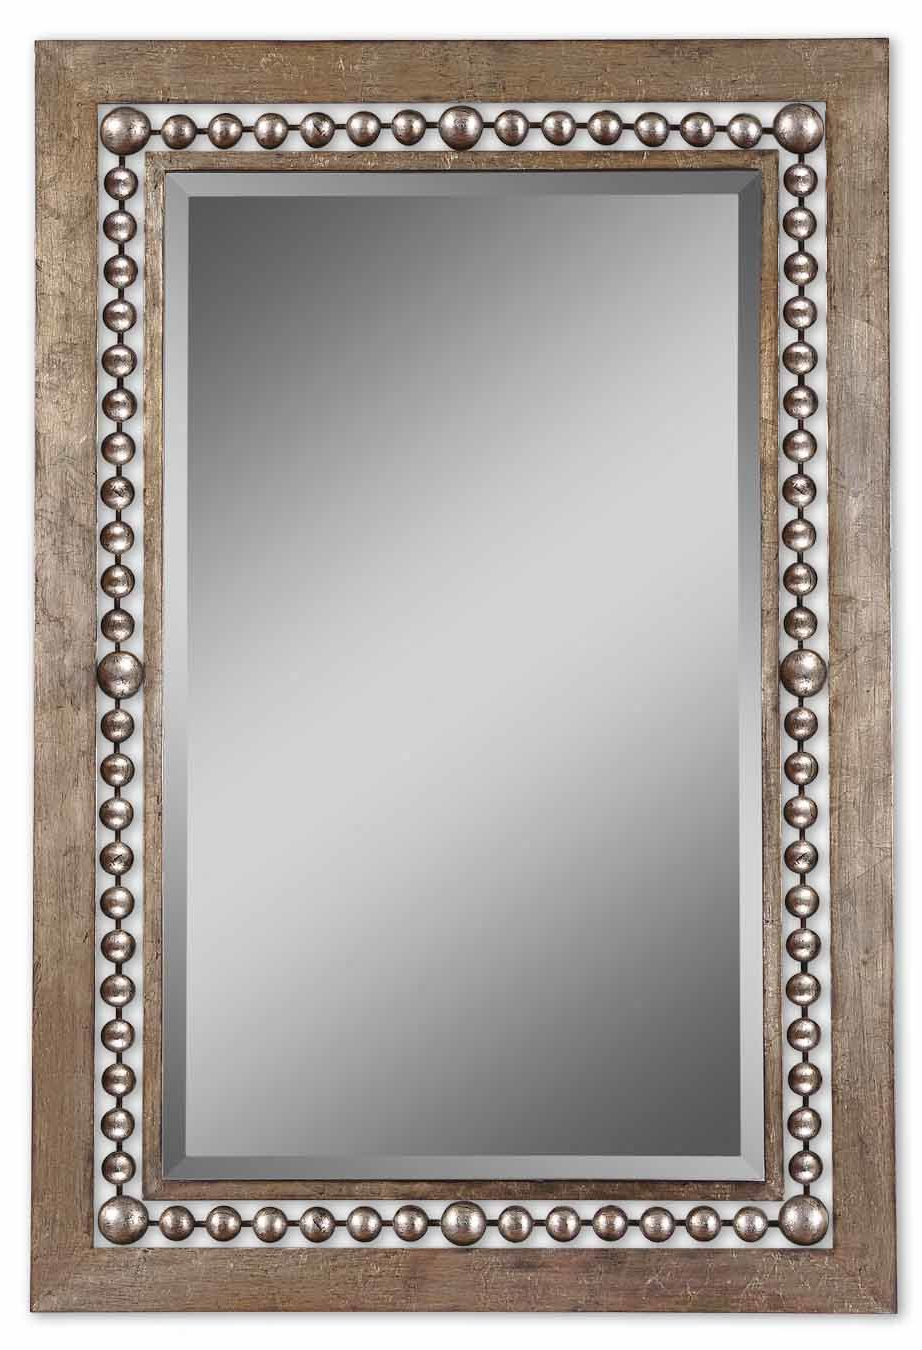 Boyers Wall Mirrors With Regard To Famous Global Inspired Metal Wall Mirror (View 14 of 20)